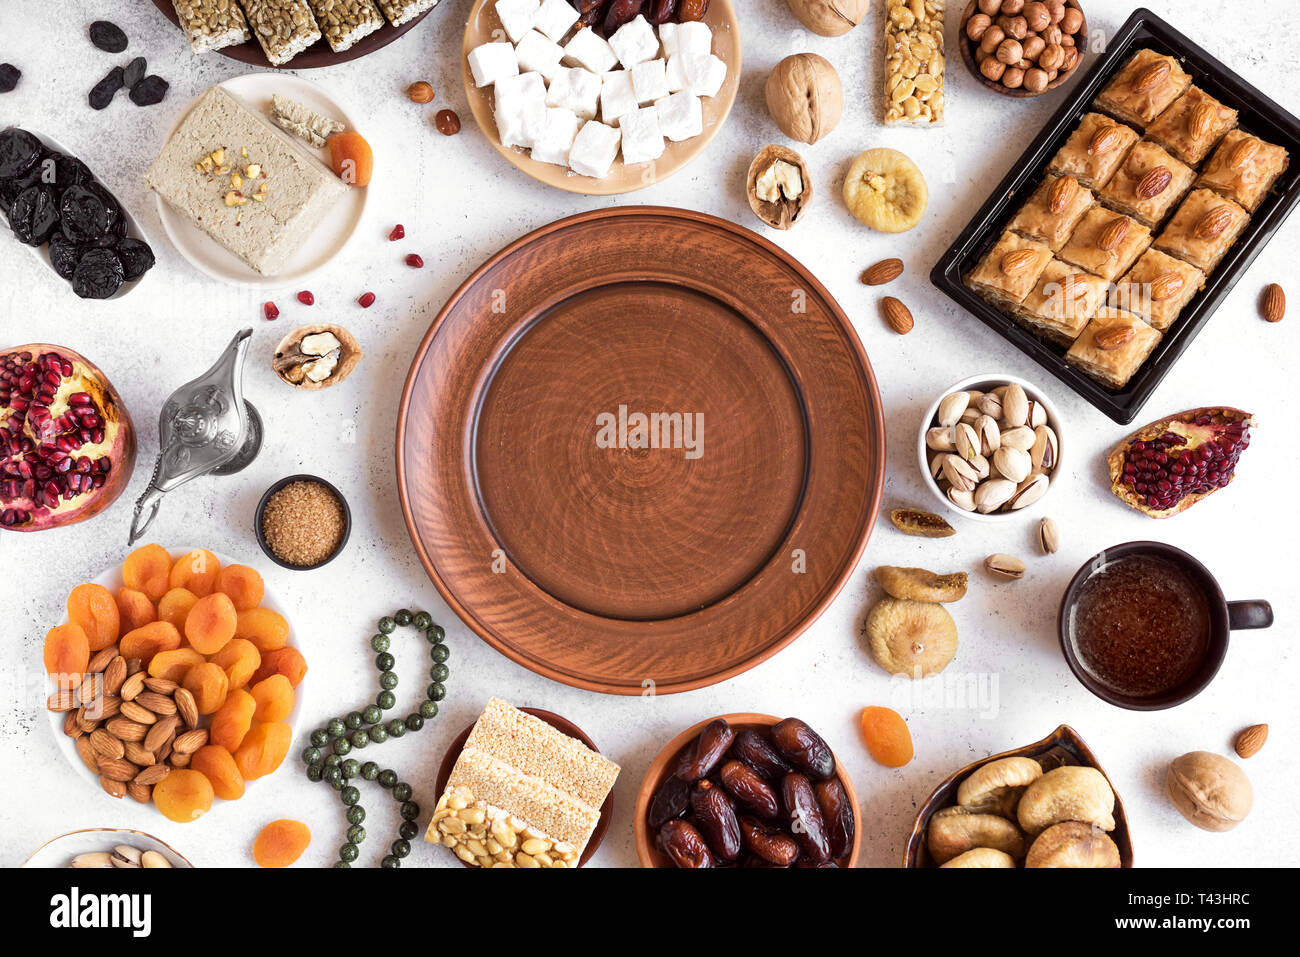 Assortment, set of Eastern, Arabic, Turkish sweets, nuts and dried fruits around plate, top view, copy space. Holiday Middle Eastern traditional sweet - Stock Image